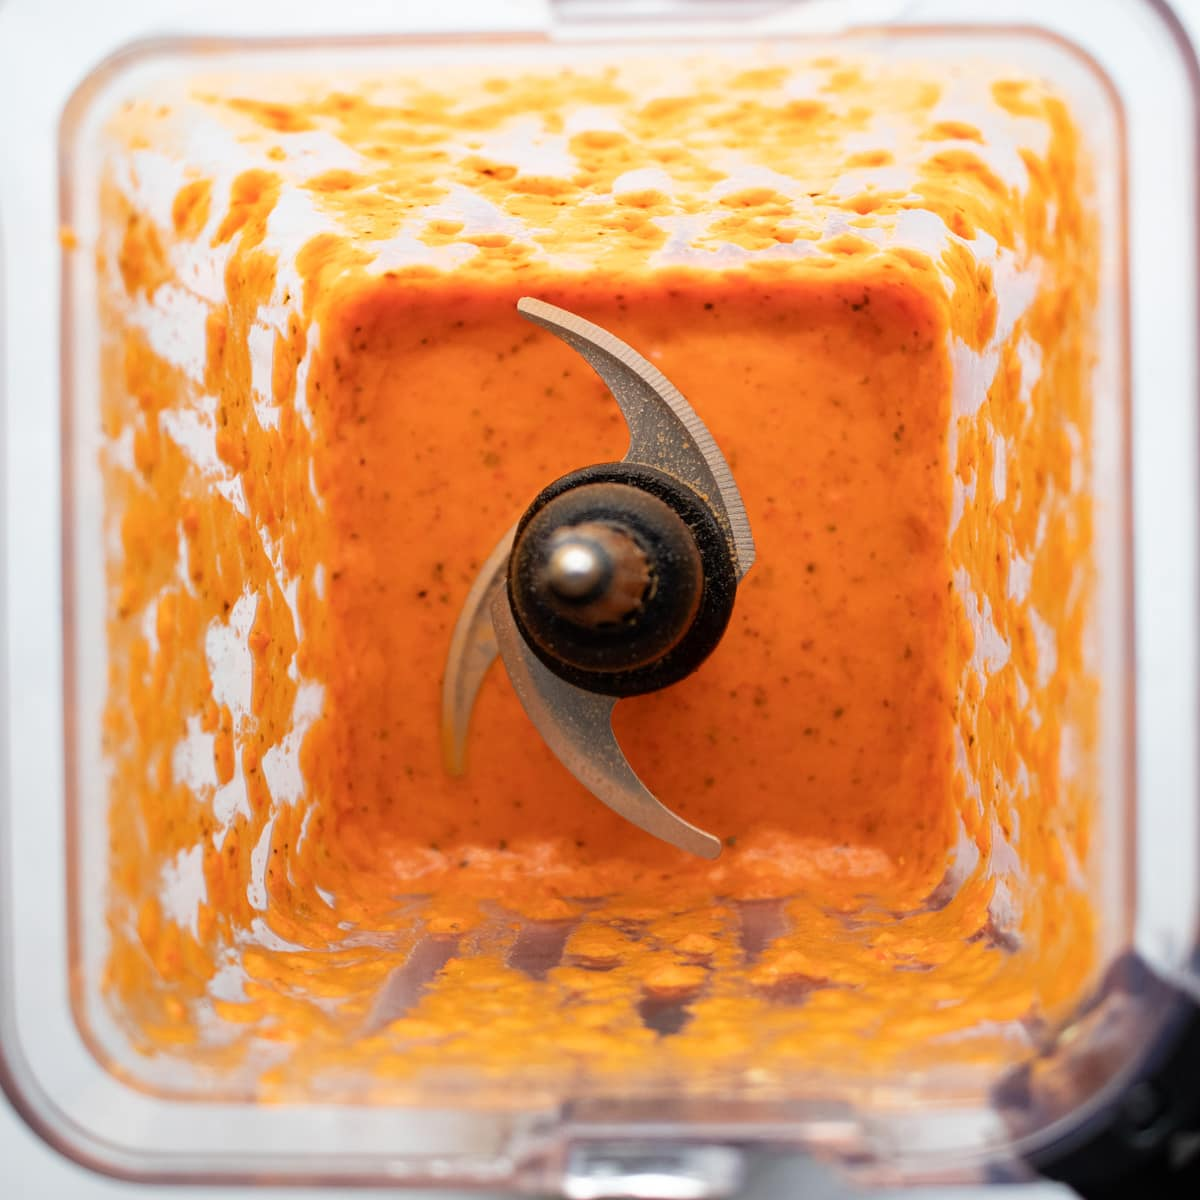 Looking down into a blender with freshly made roasted red pepper sauce.